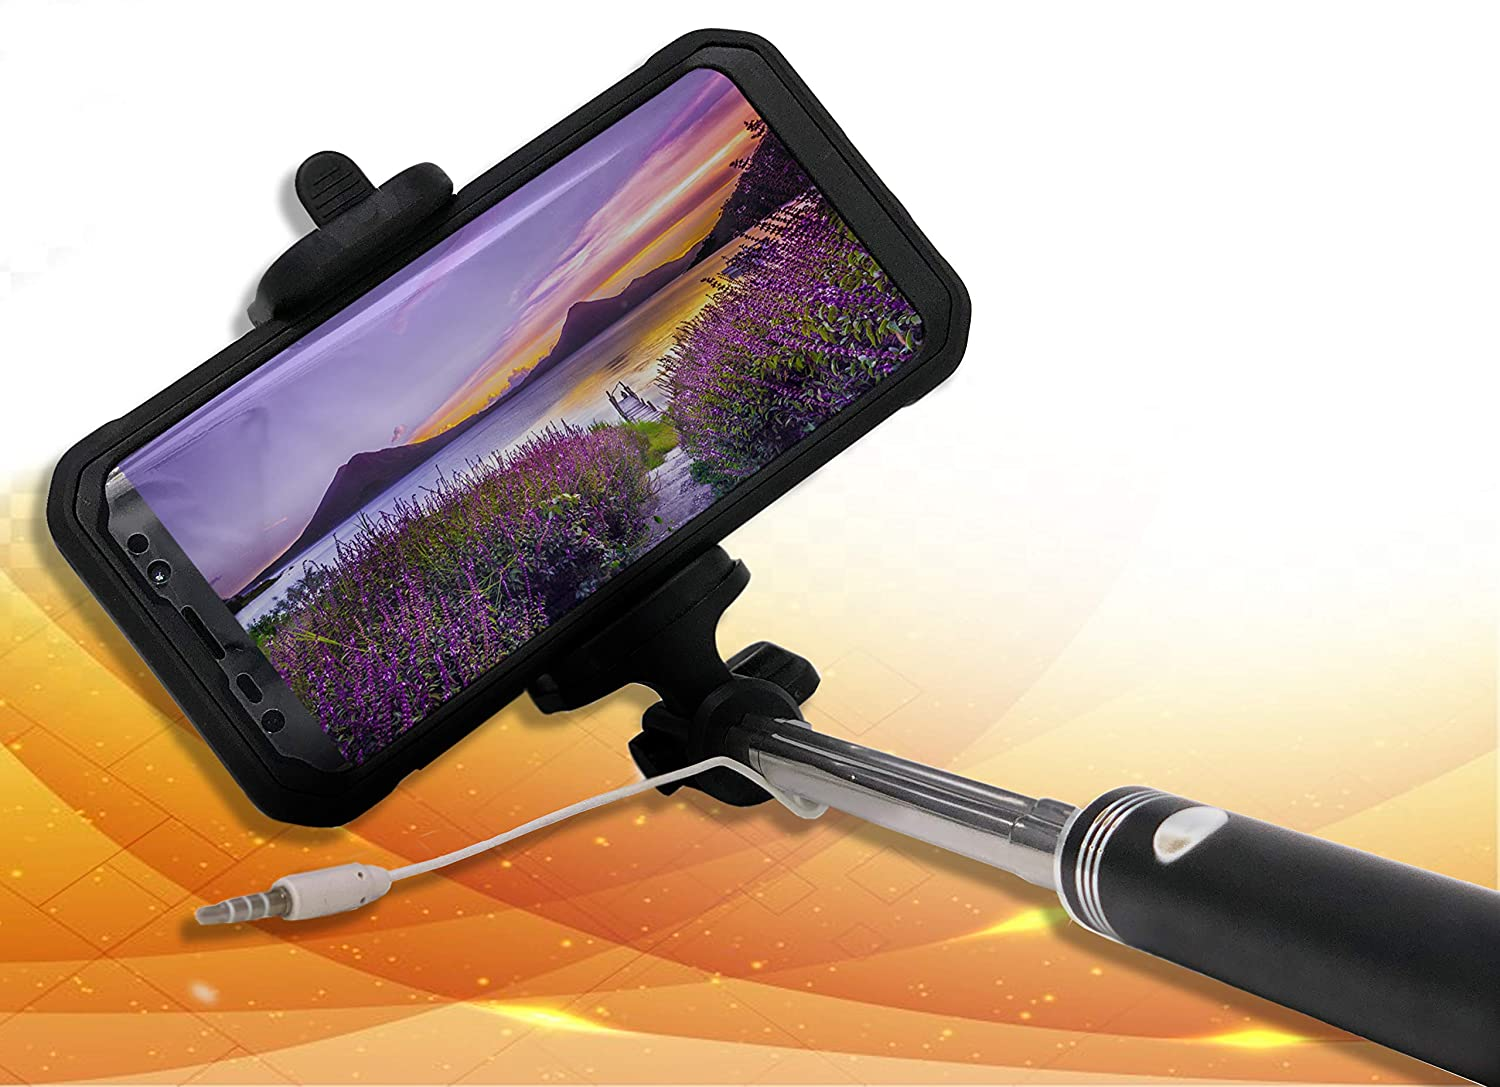 Selfie Stick Wired - No Battery Required for iPhone X/8/8 Plus/7/7 Plus/Galaxy Note 8/S8/S8 Plus/Pixel/XL/LG G6/G5 & More CGM SUPPLY IP5AGSP-RO